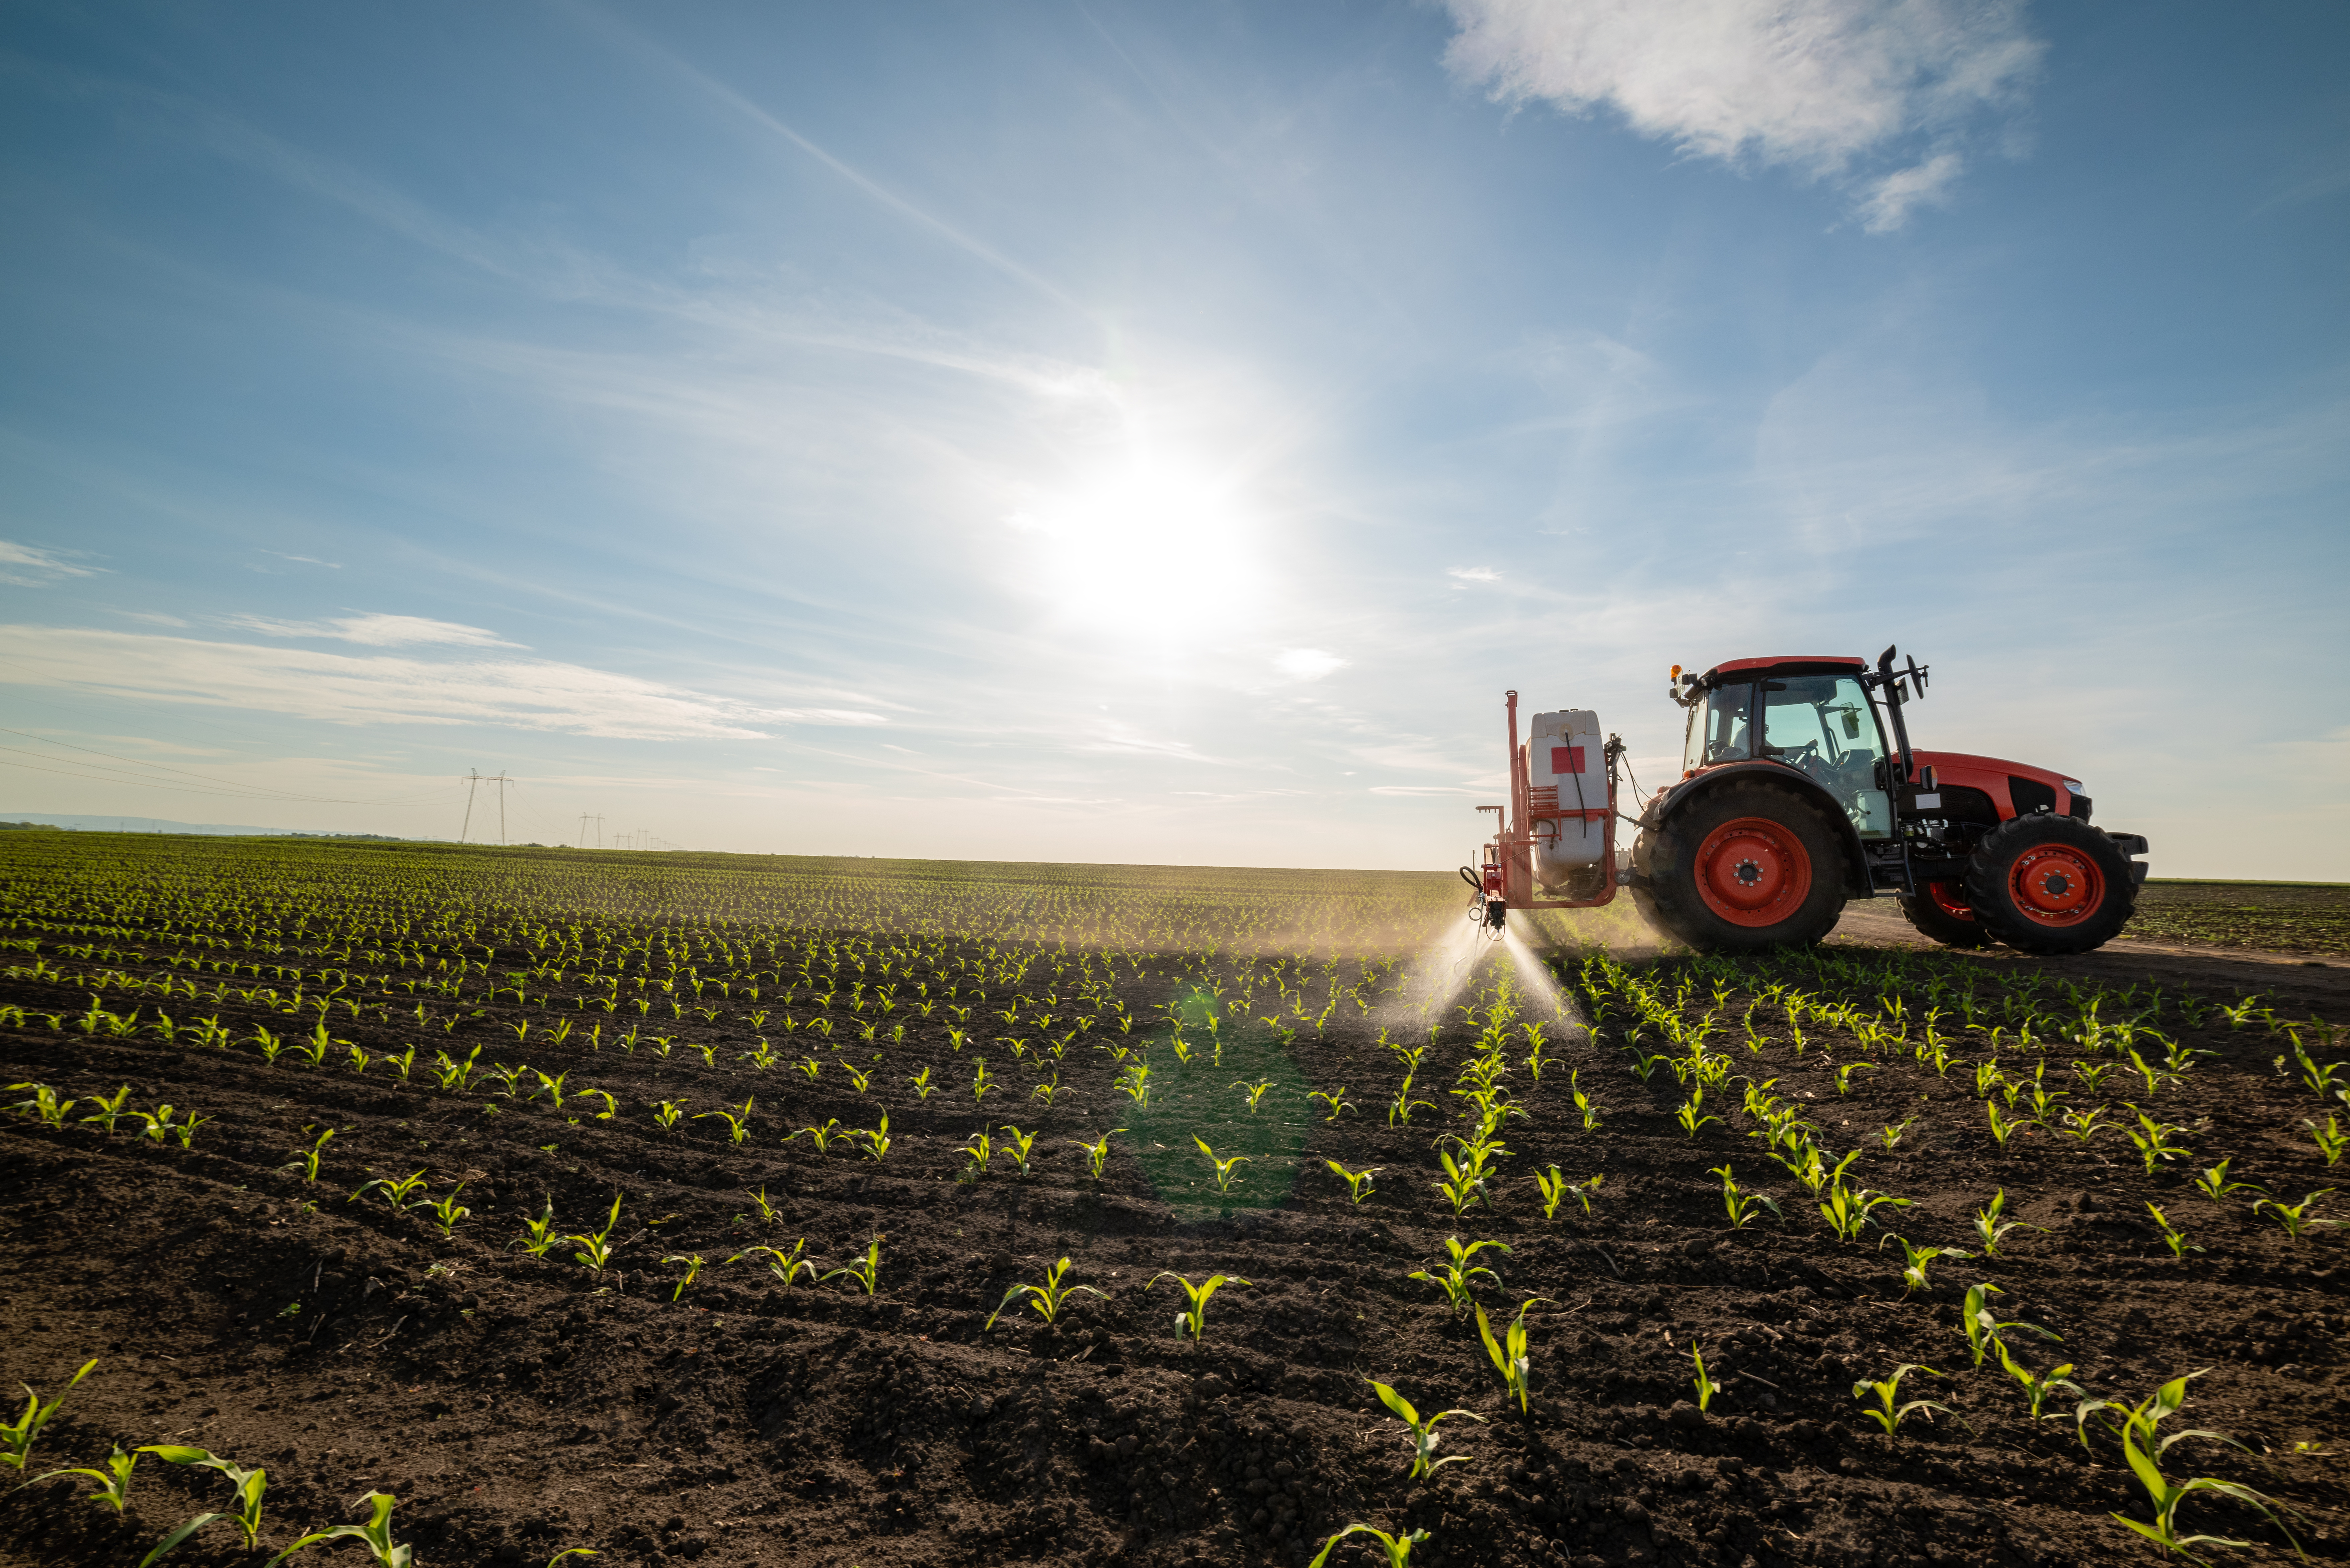 Report Provides New Farmer Insights on Farm-Level Data Collection and Sharing in 2021